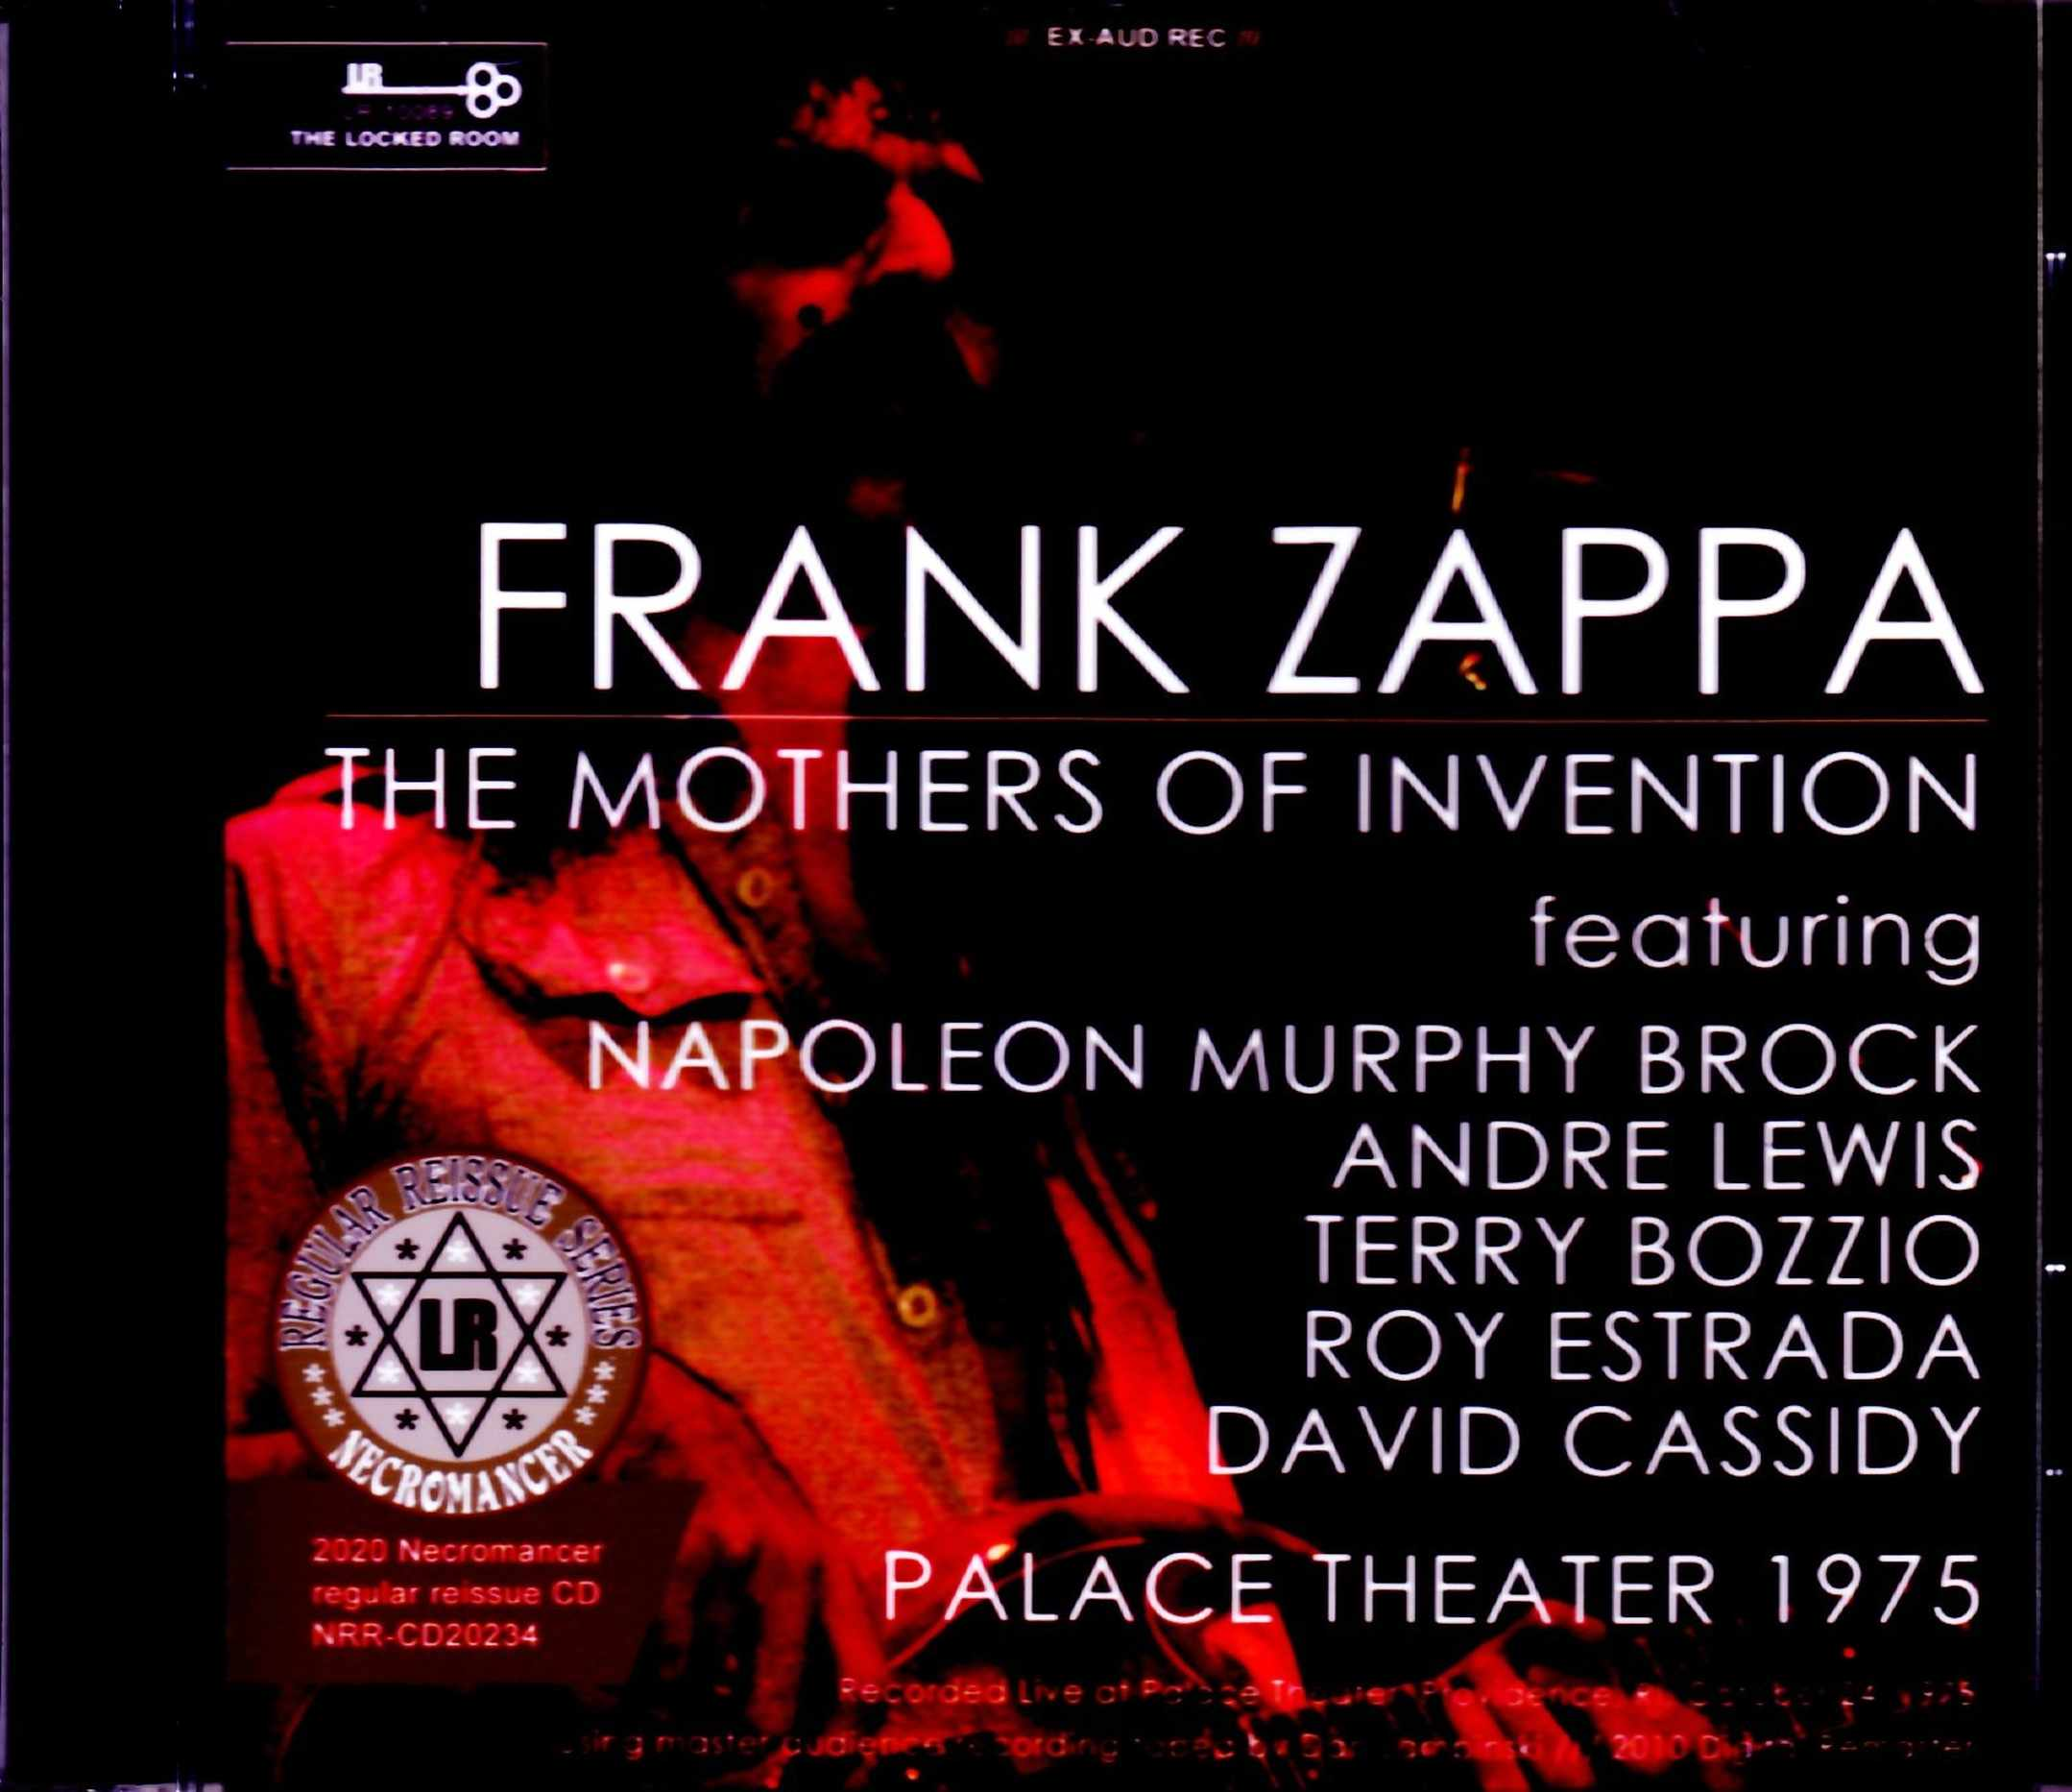 Frank Zappa the Mothers of Invention フランク・ザッパ/RI,USA 1975